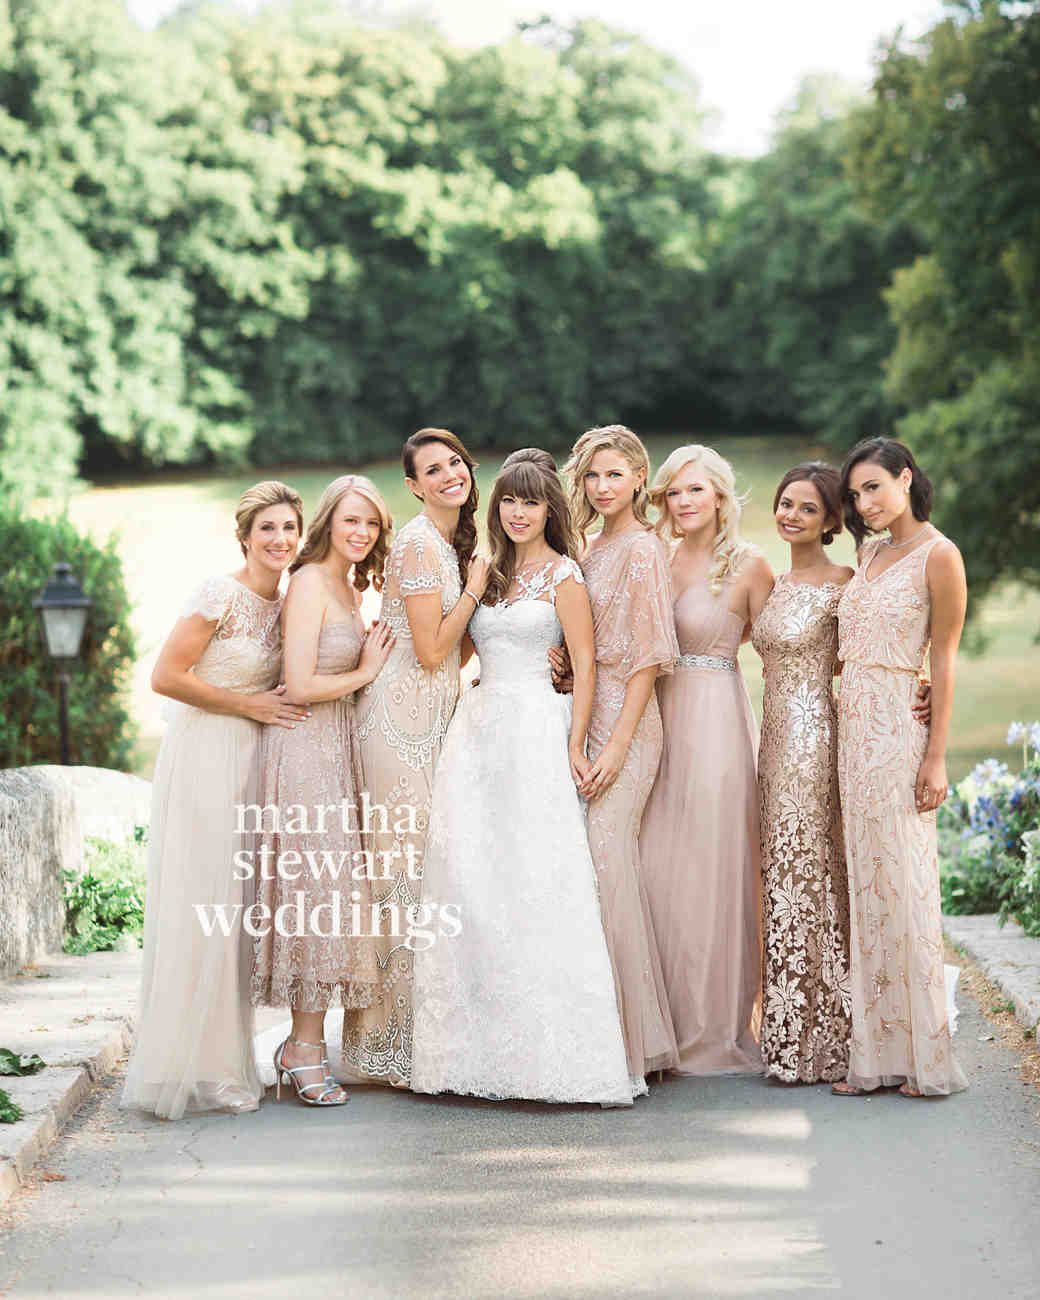 Wedding Mismatched Bridesmaid Dresses 41 reasons to love the mismatched bridesmaids look martha neutral bridesmaid dresses